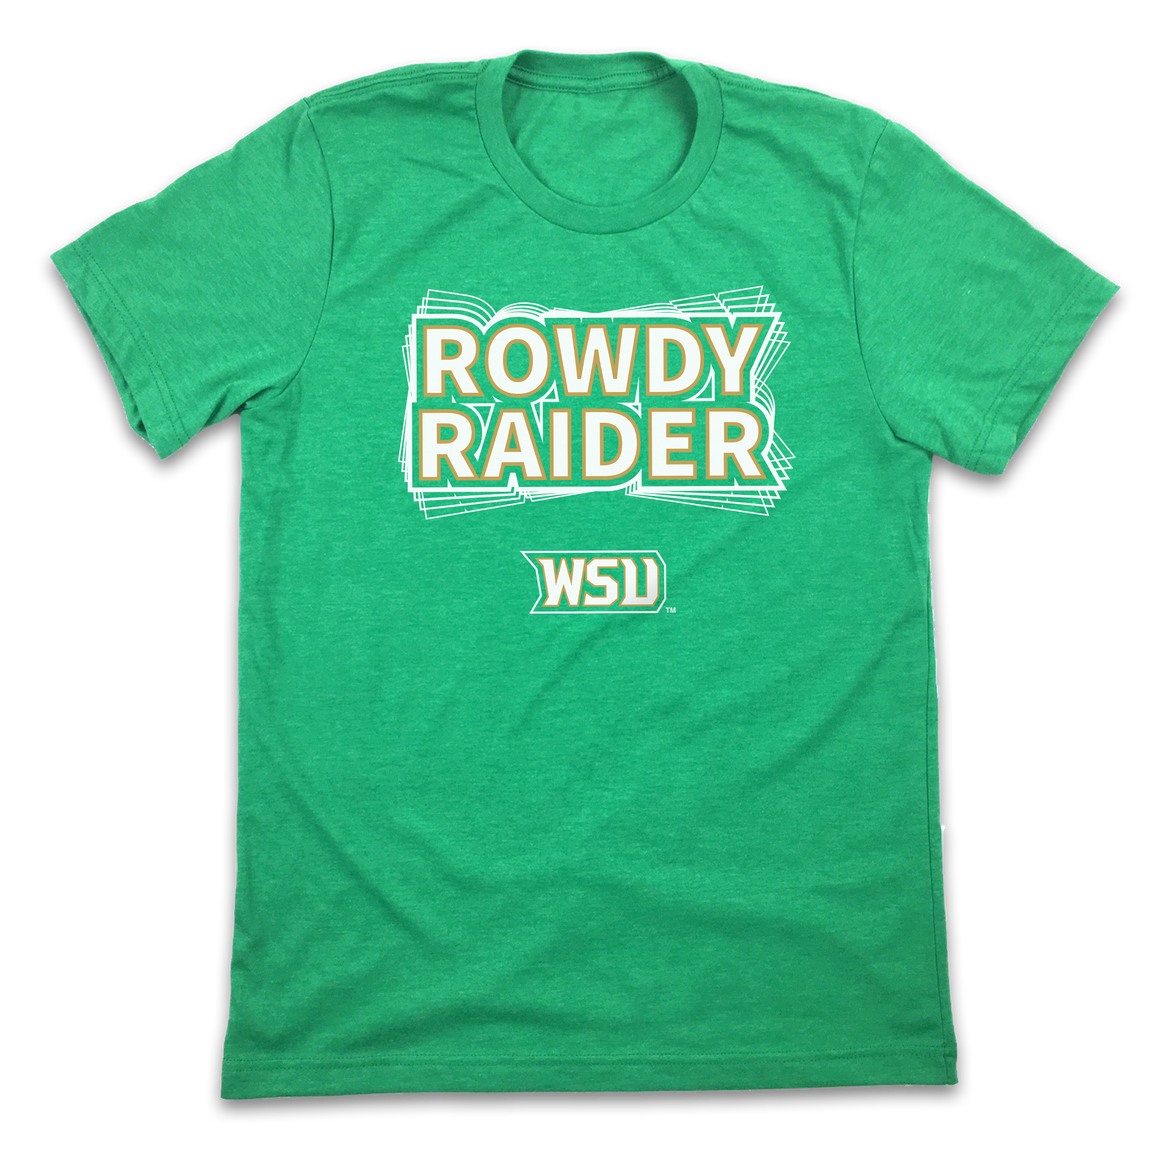 Rowdy Raiders - Wright State University